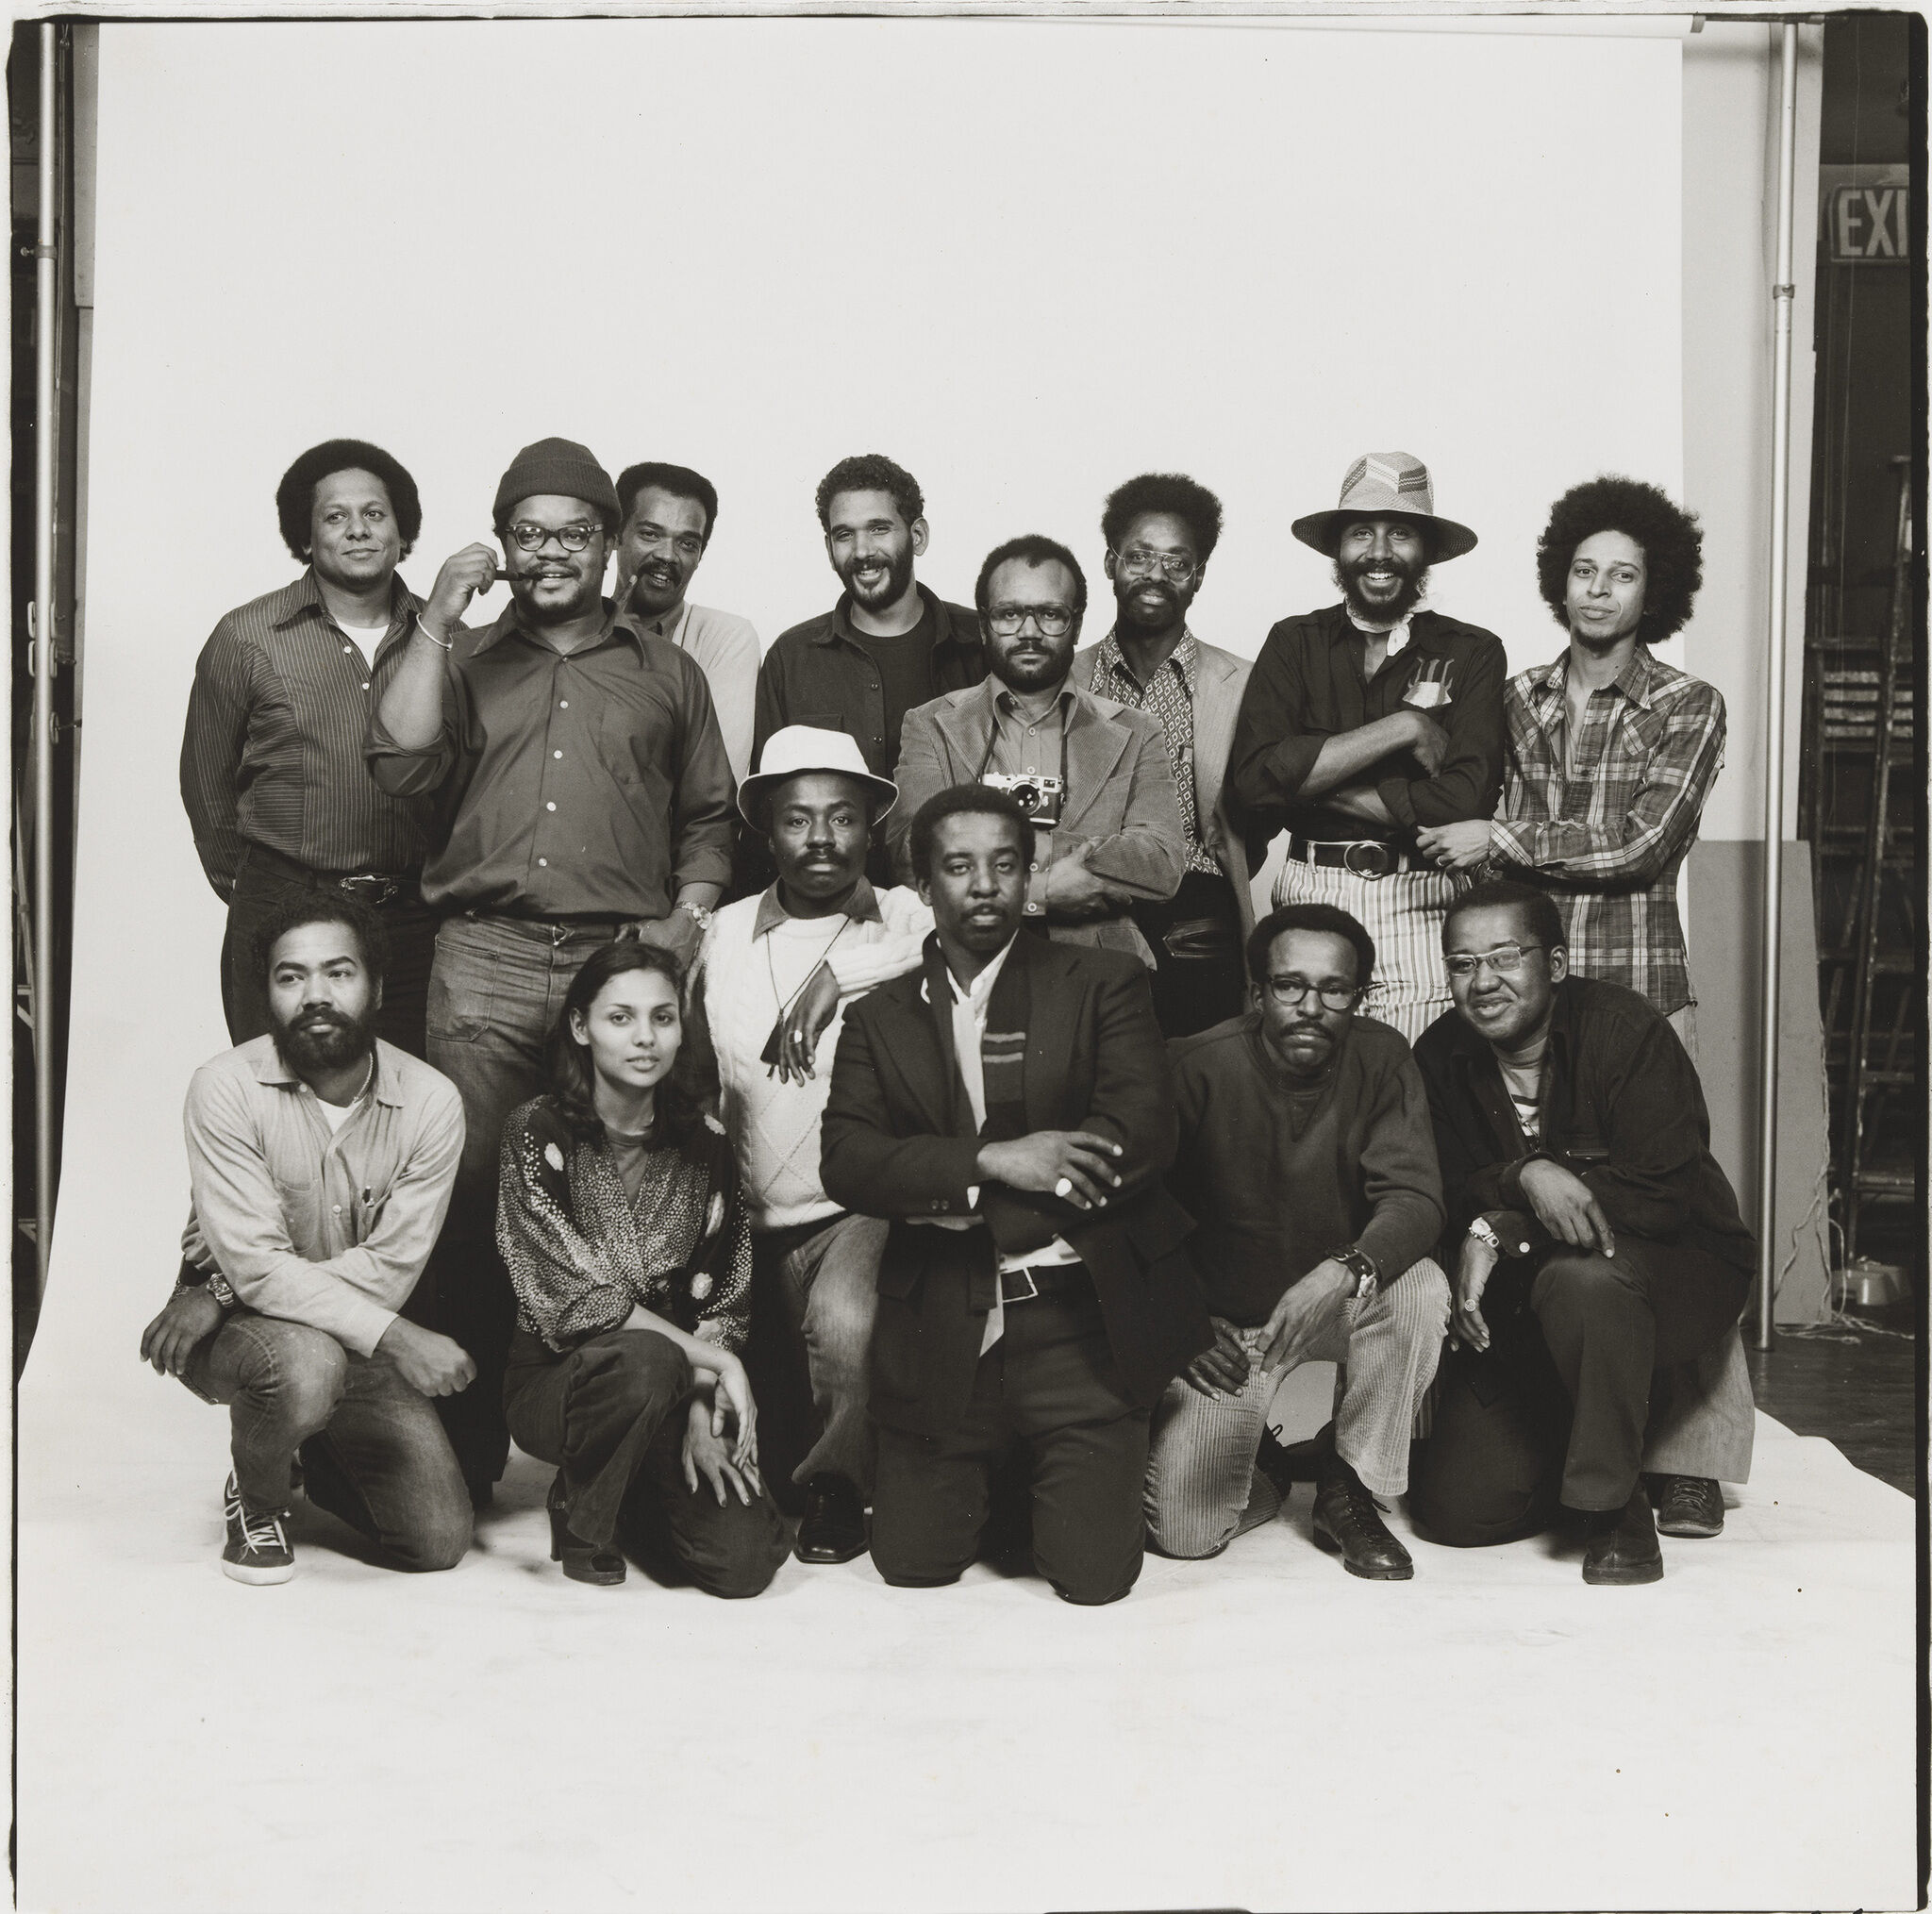 Fourteen members of the Kamoinge Workshop—all Black photographers—pose in two rows for a group portrait